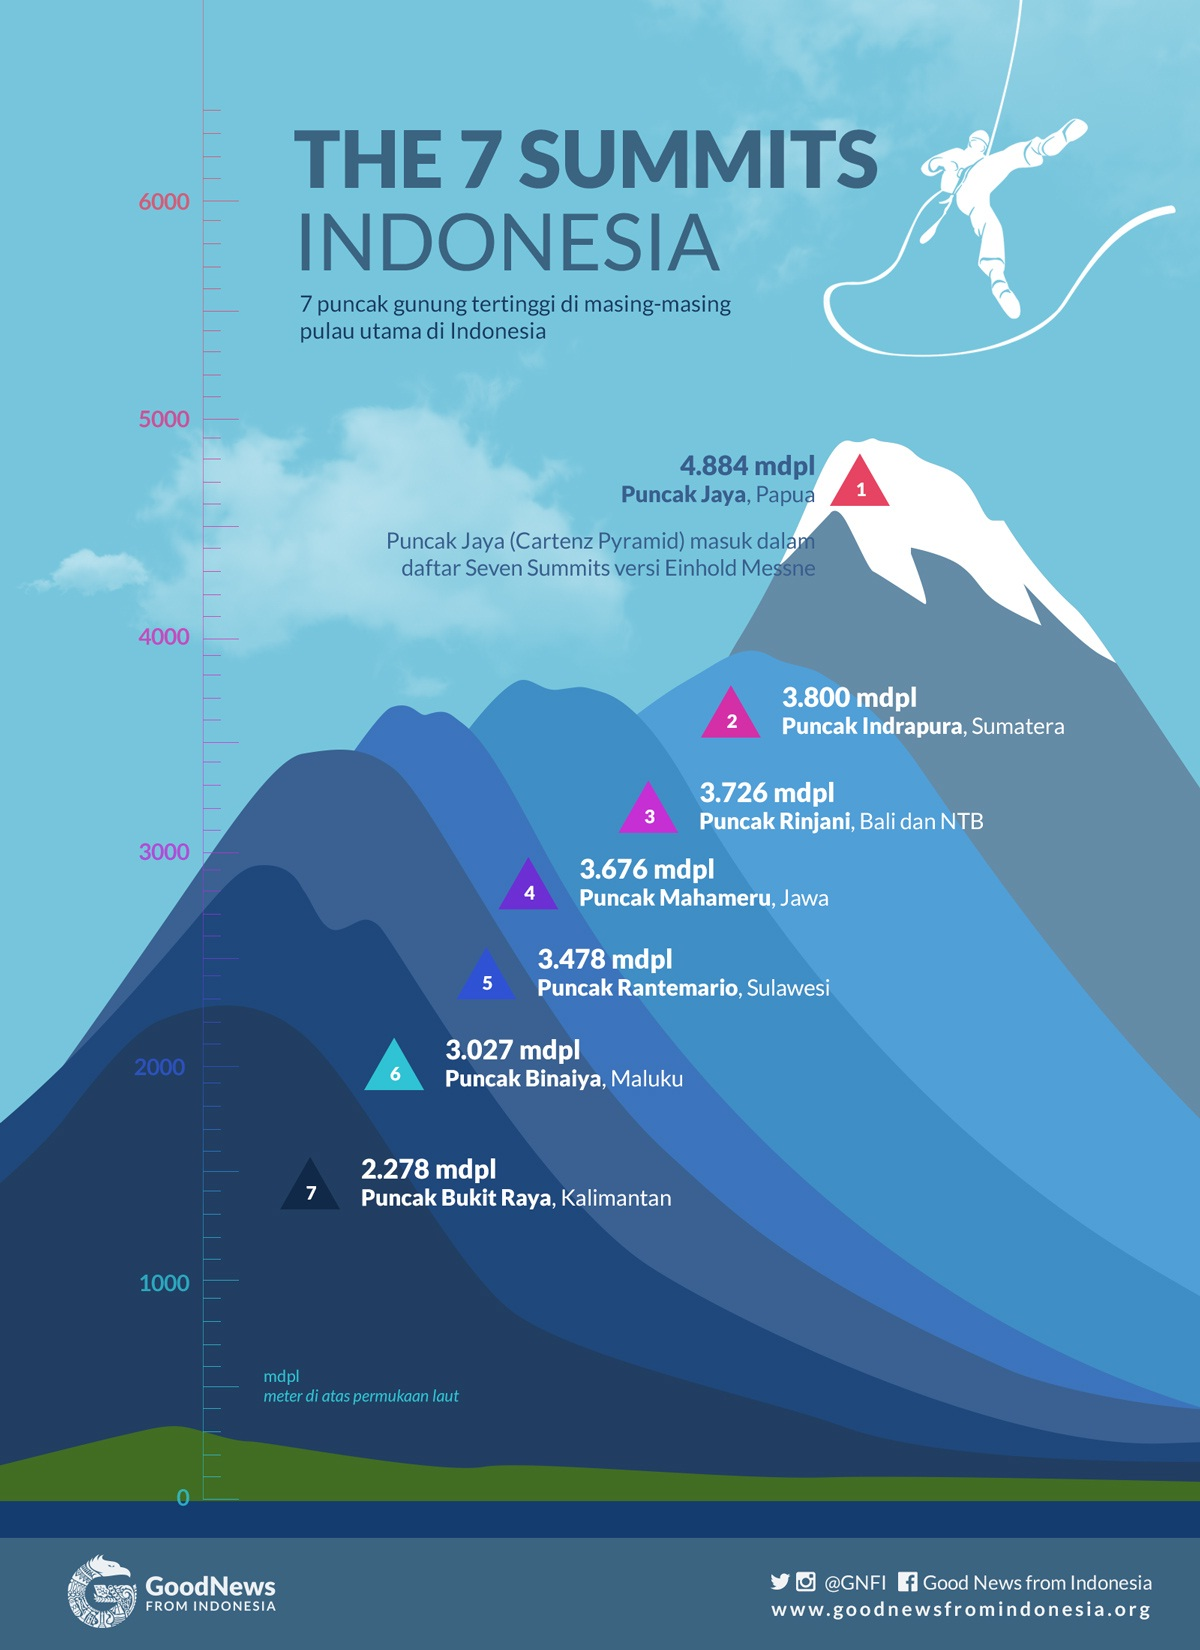 7-summit-indonesia